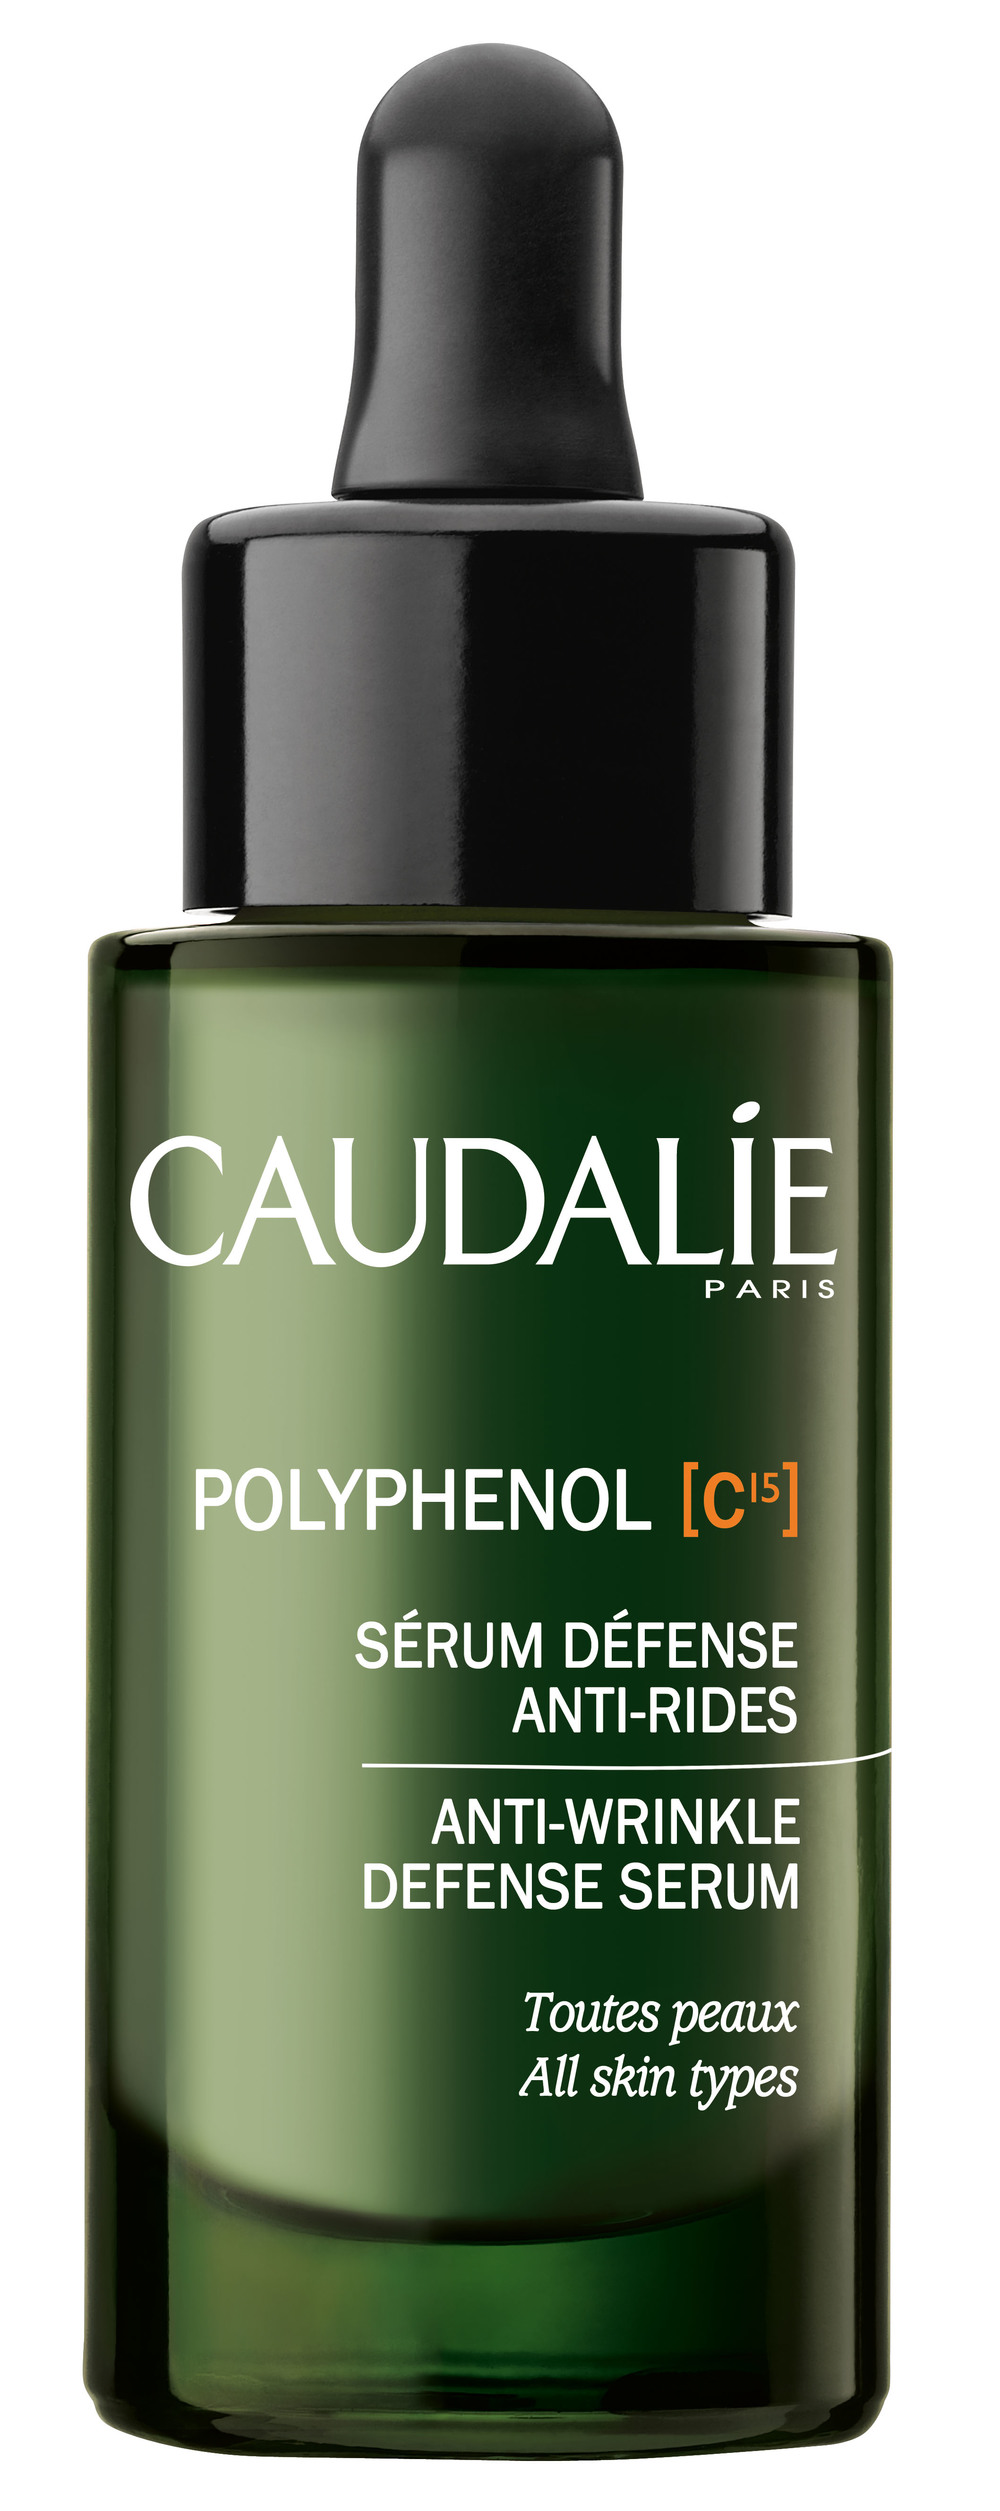 Anti-wrinkle defense serum